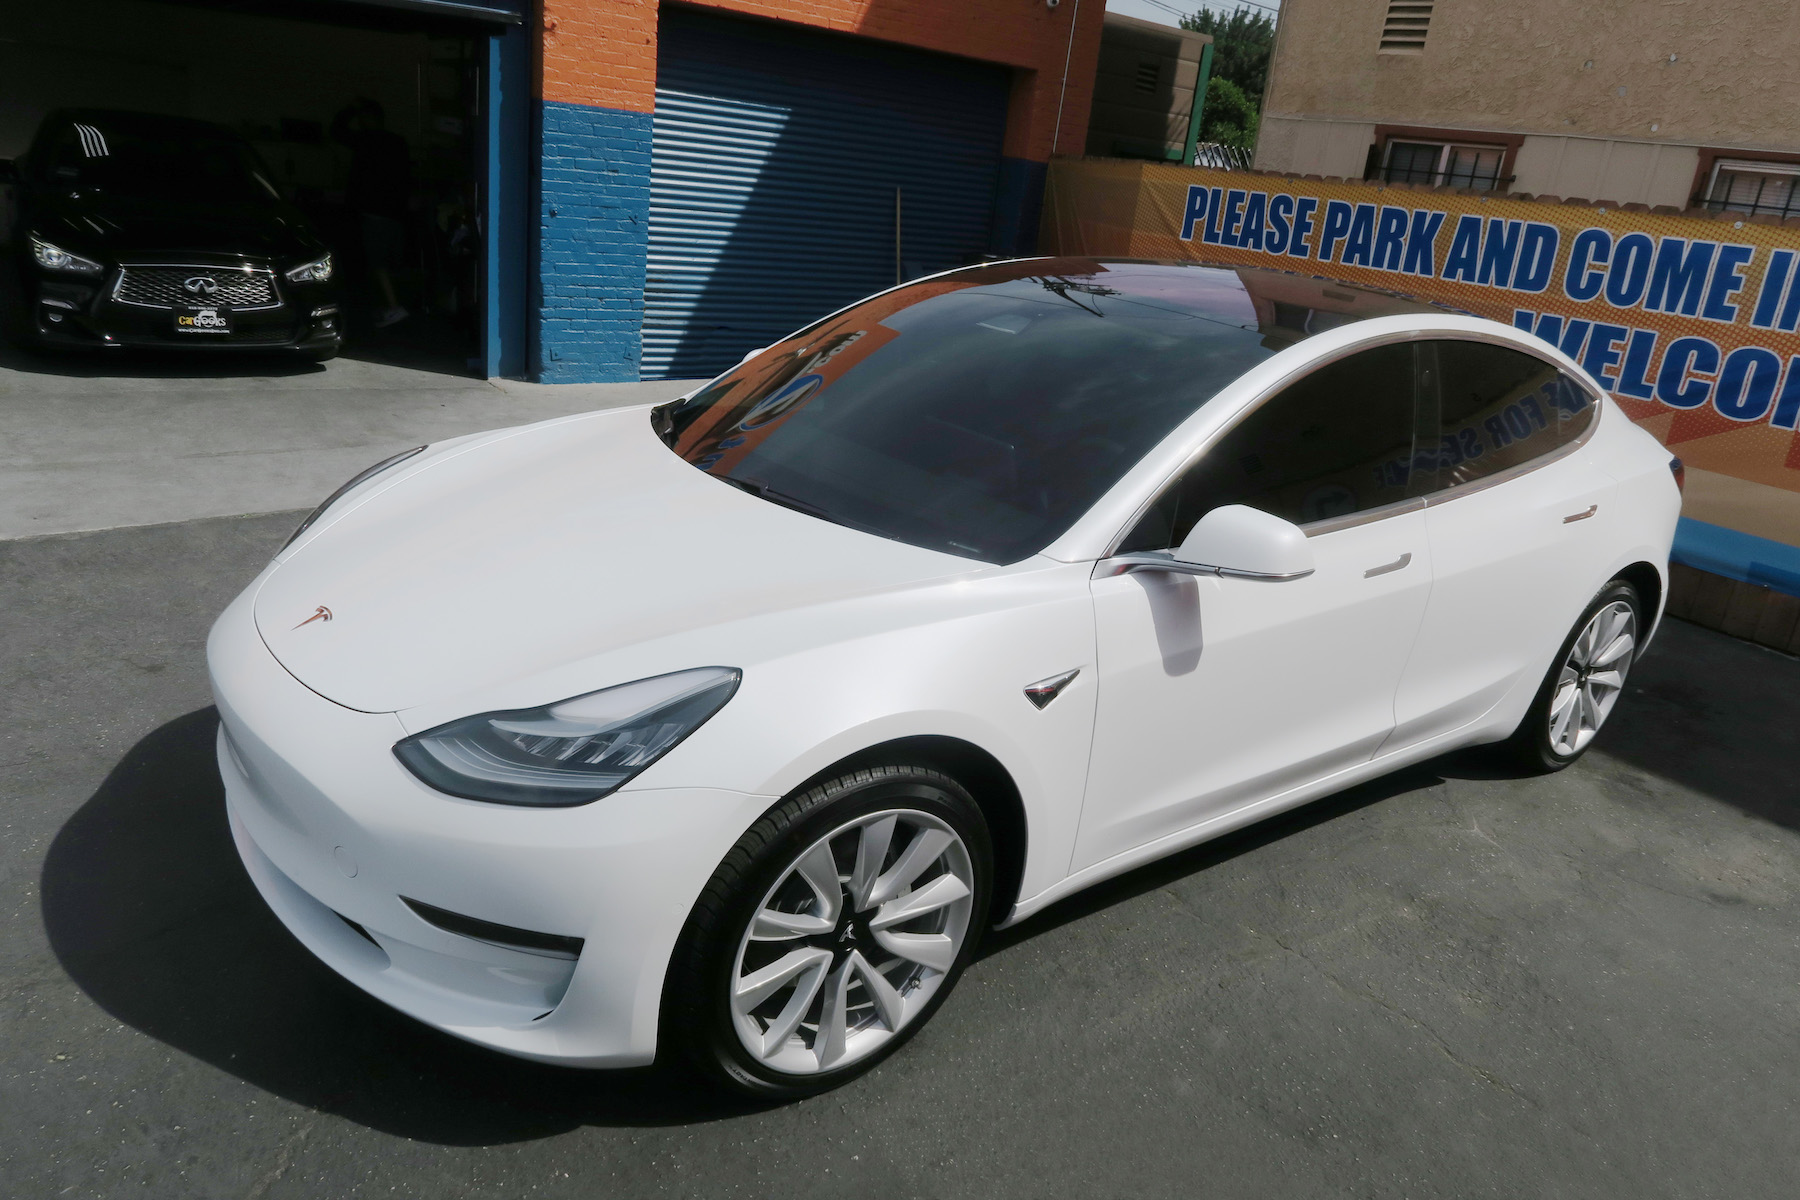 Stratos Ceramic Tint On A Tesla Model 3 In Los Angeles